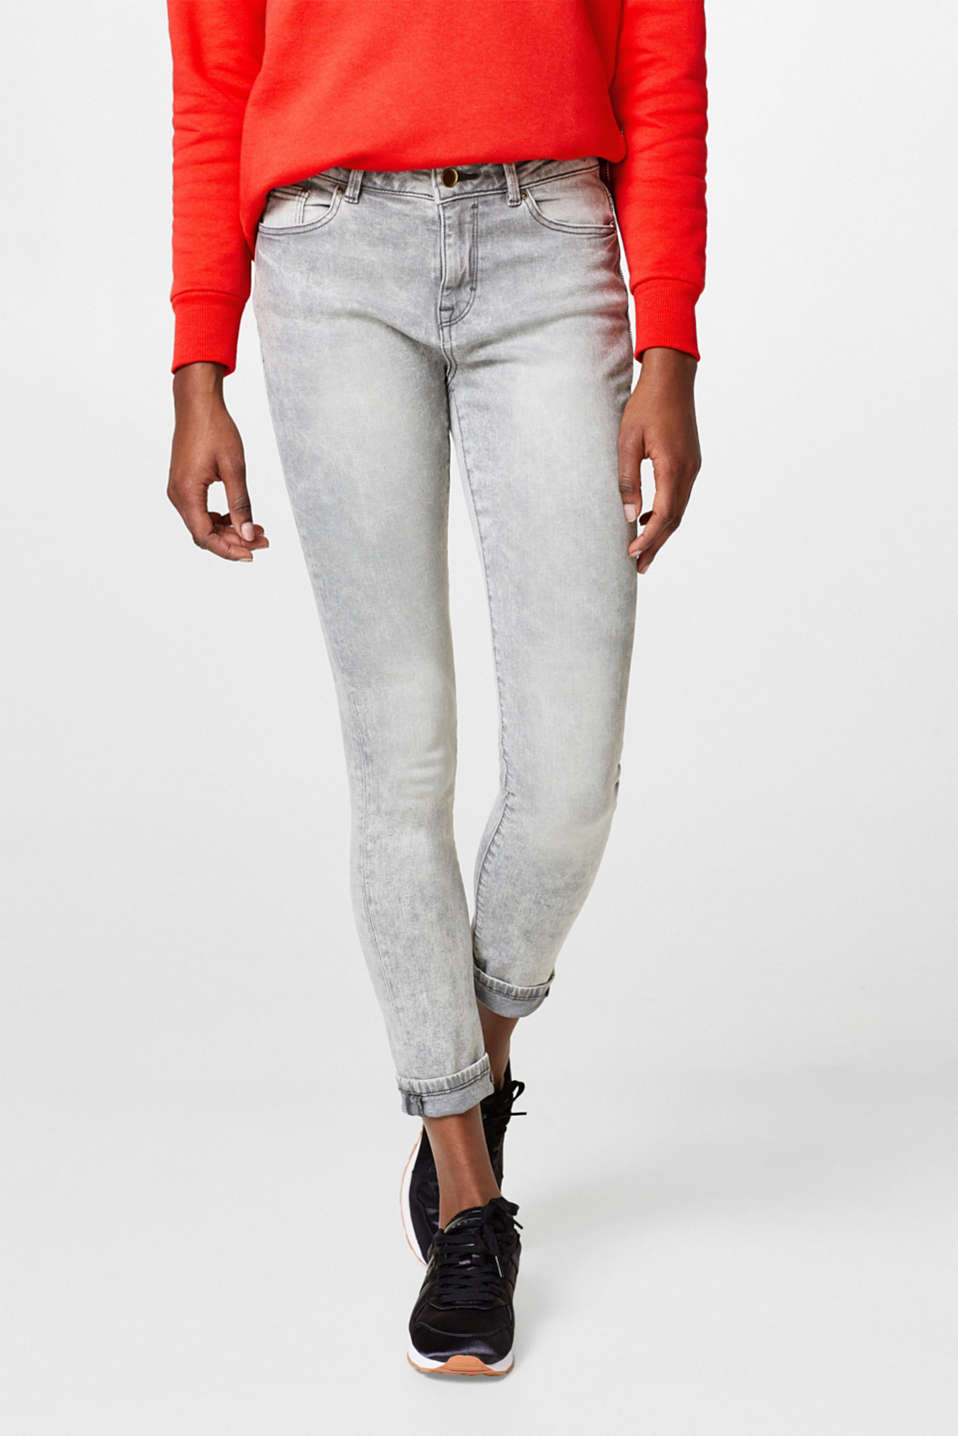 edc - Stretch jeans + trendy garment wash